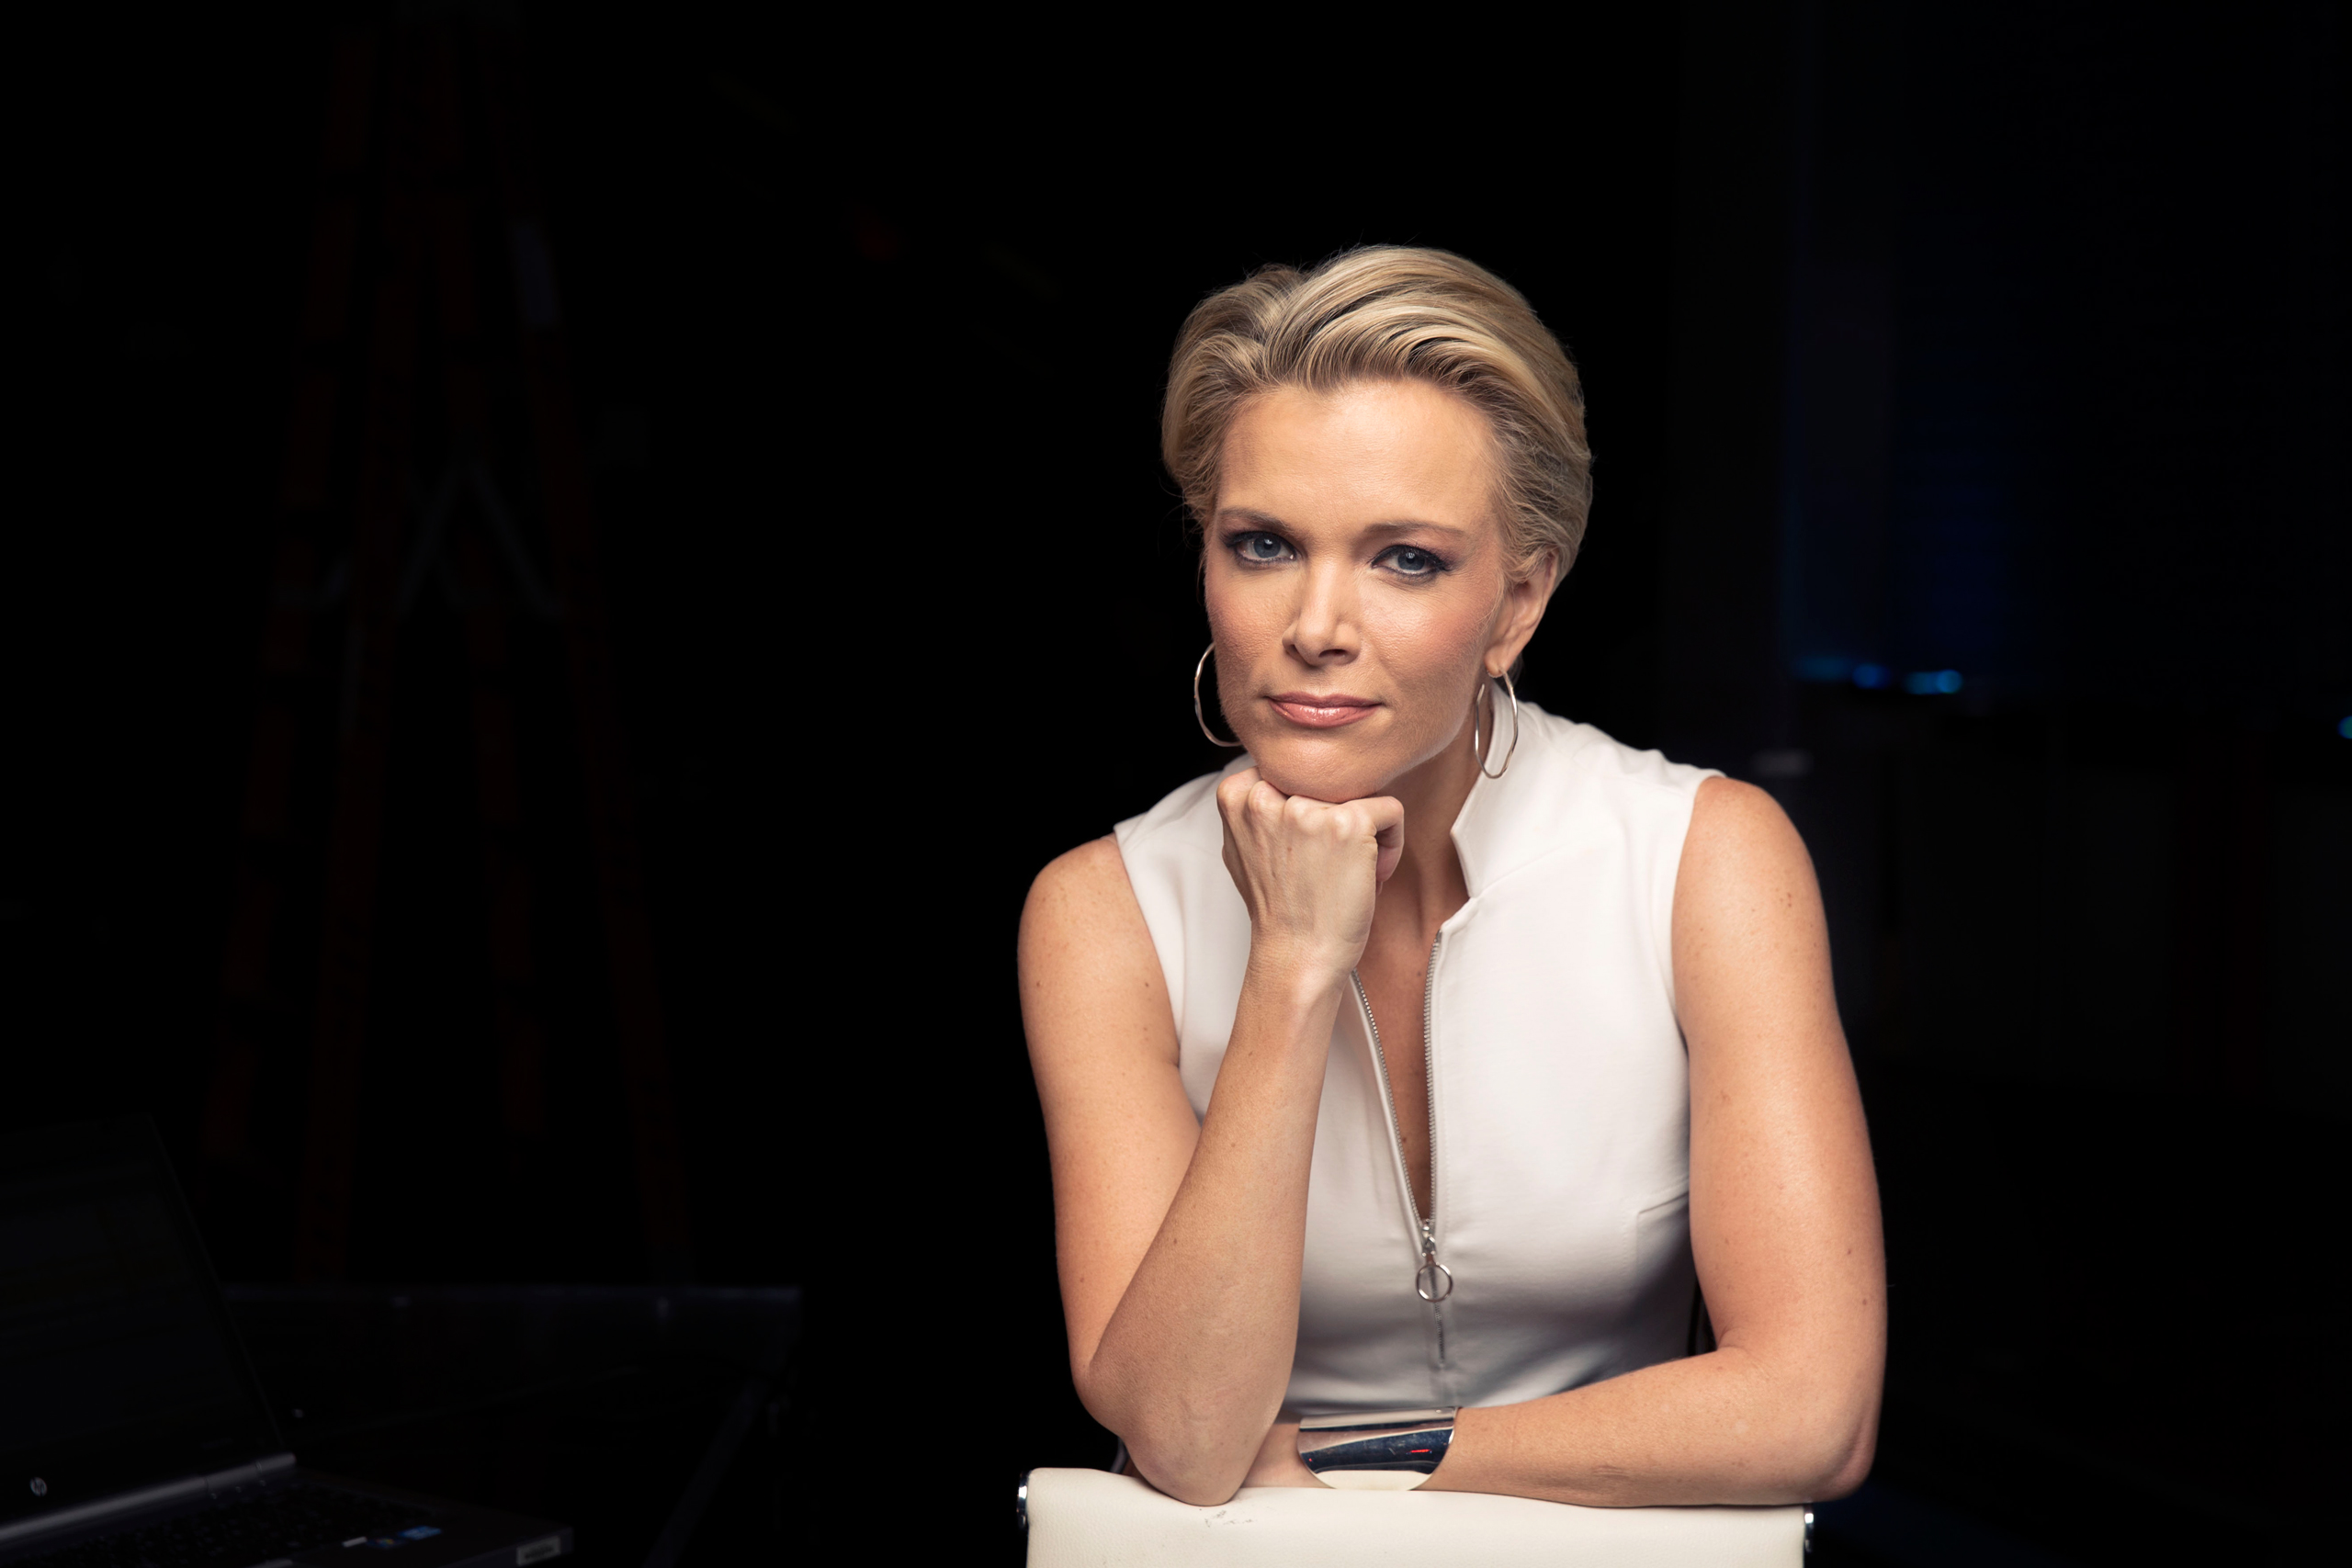 Megyn Kelly poses for a portrait in New York on May 5, 2016.